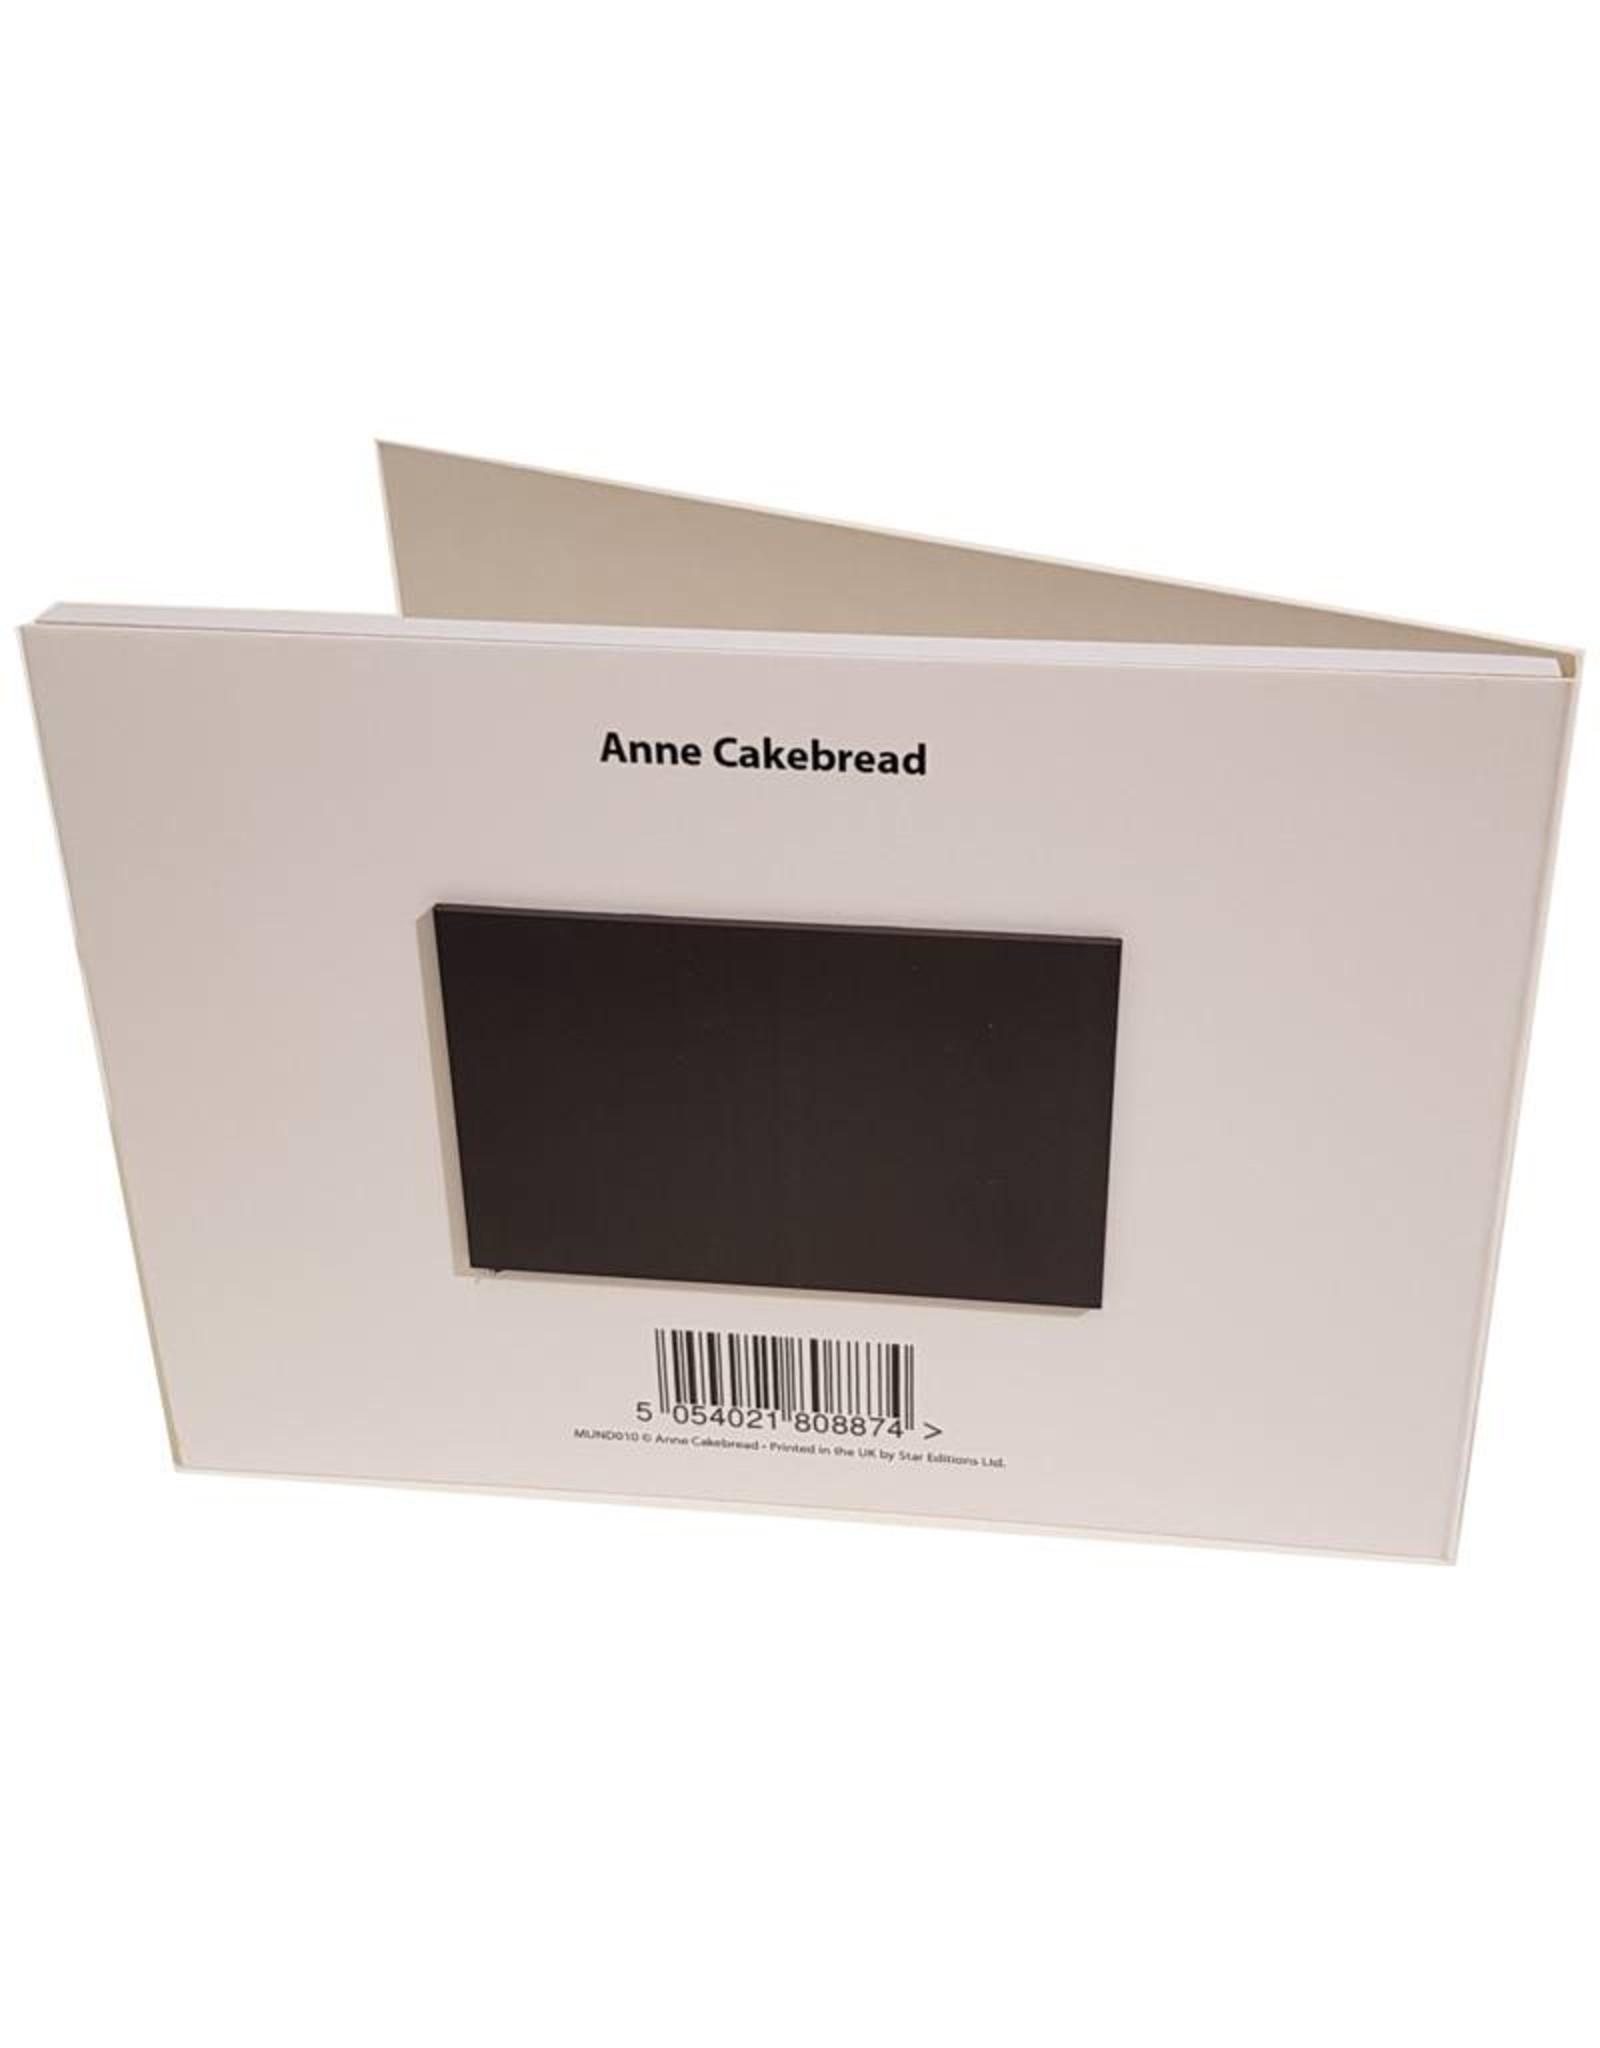 Anne Cakebread Anne Cakebread Cardigan Bay Notepad